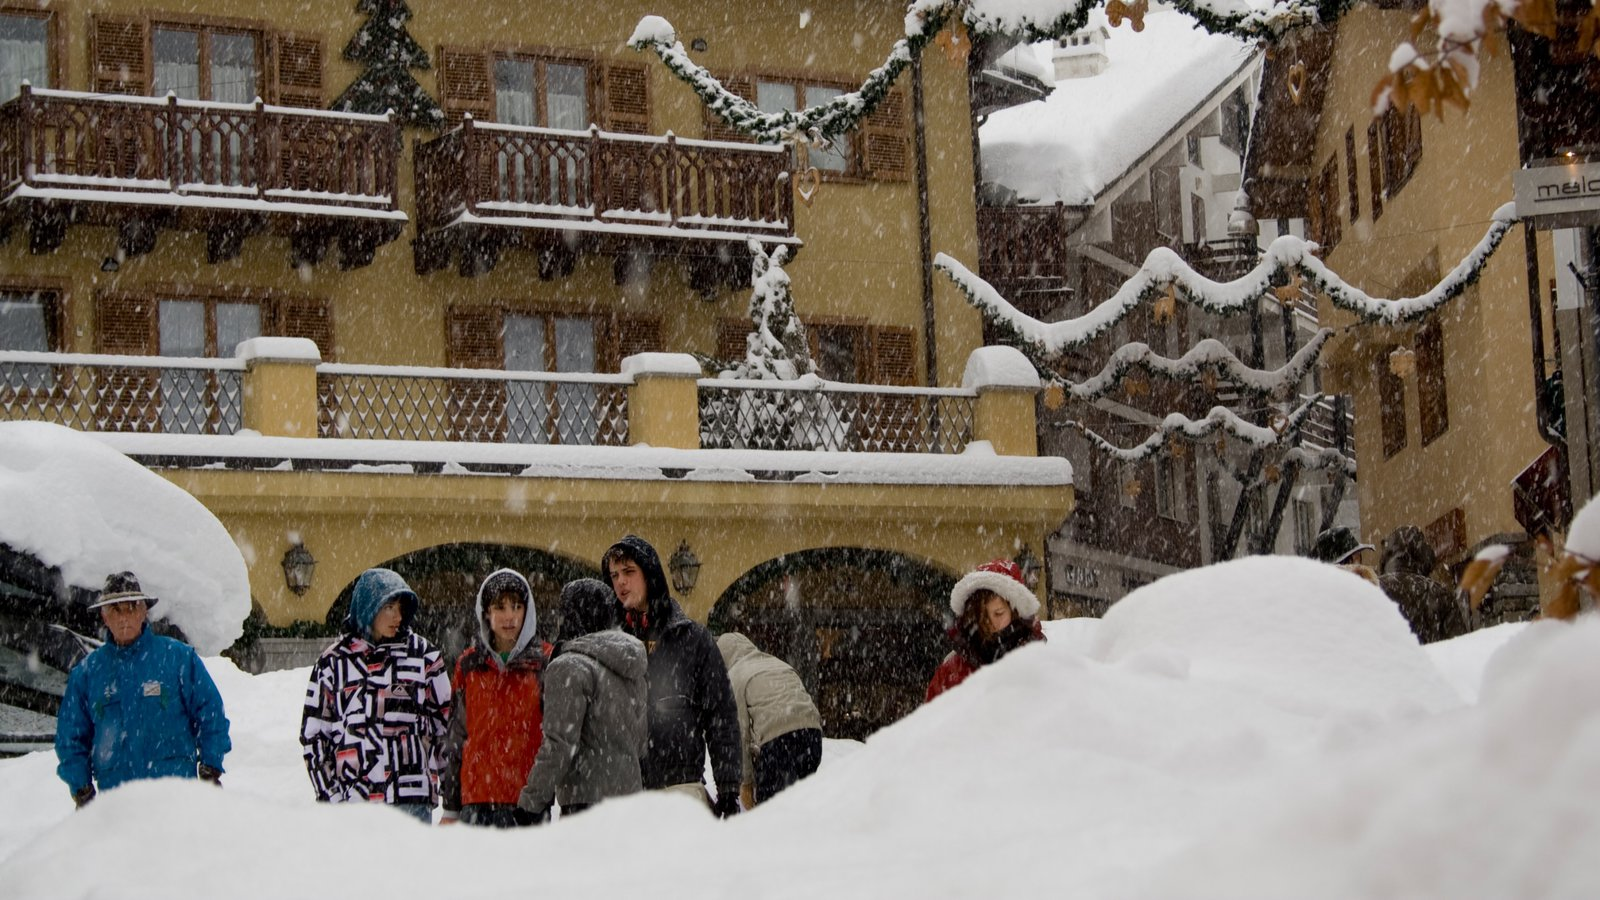 Courmayeur featuring snow as well as a small group of people